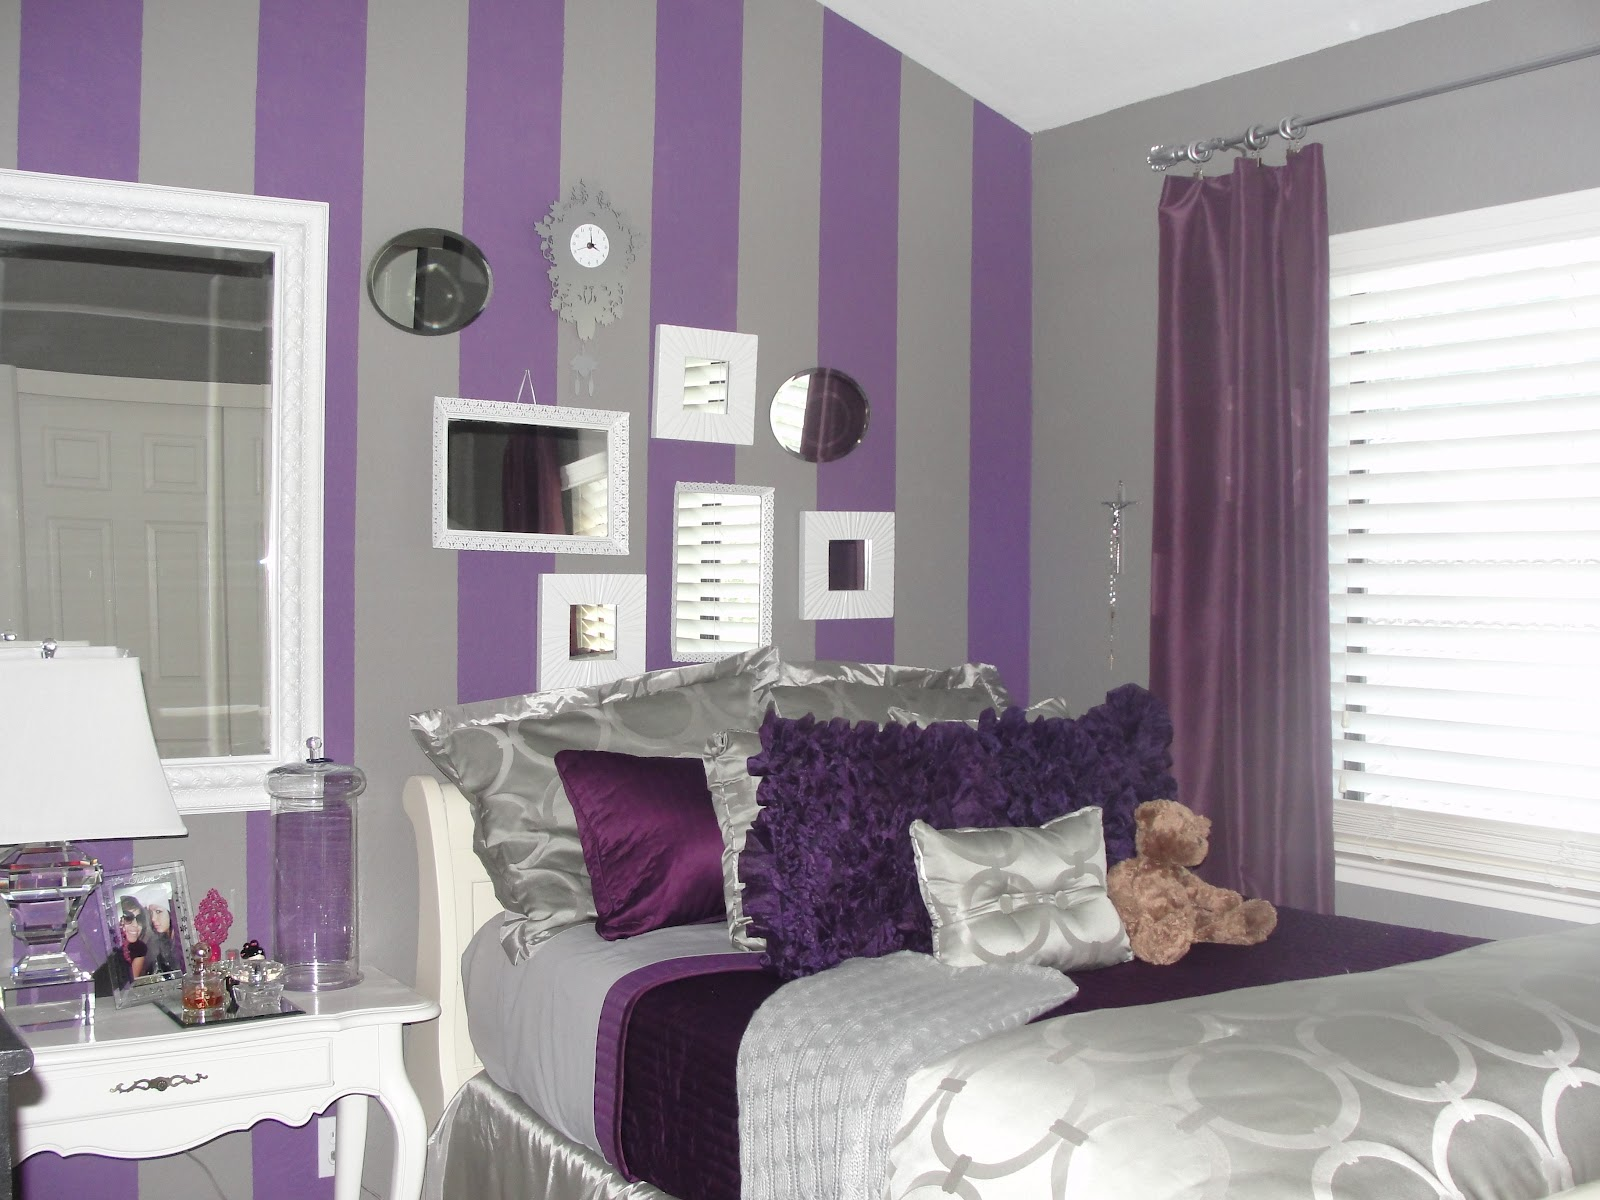 Grey And Purple Bedroom Pictures A1houston Com Grey And Purple Bedroom  Paint Ideas Bedroom Style. Purple And Gray Bedroom   PierPointSprings com